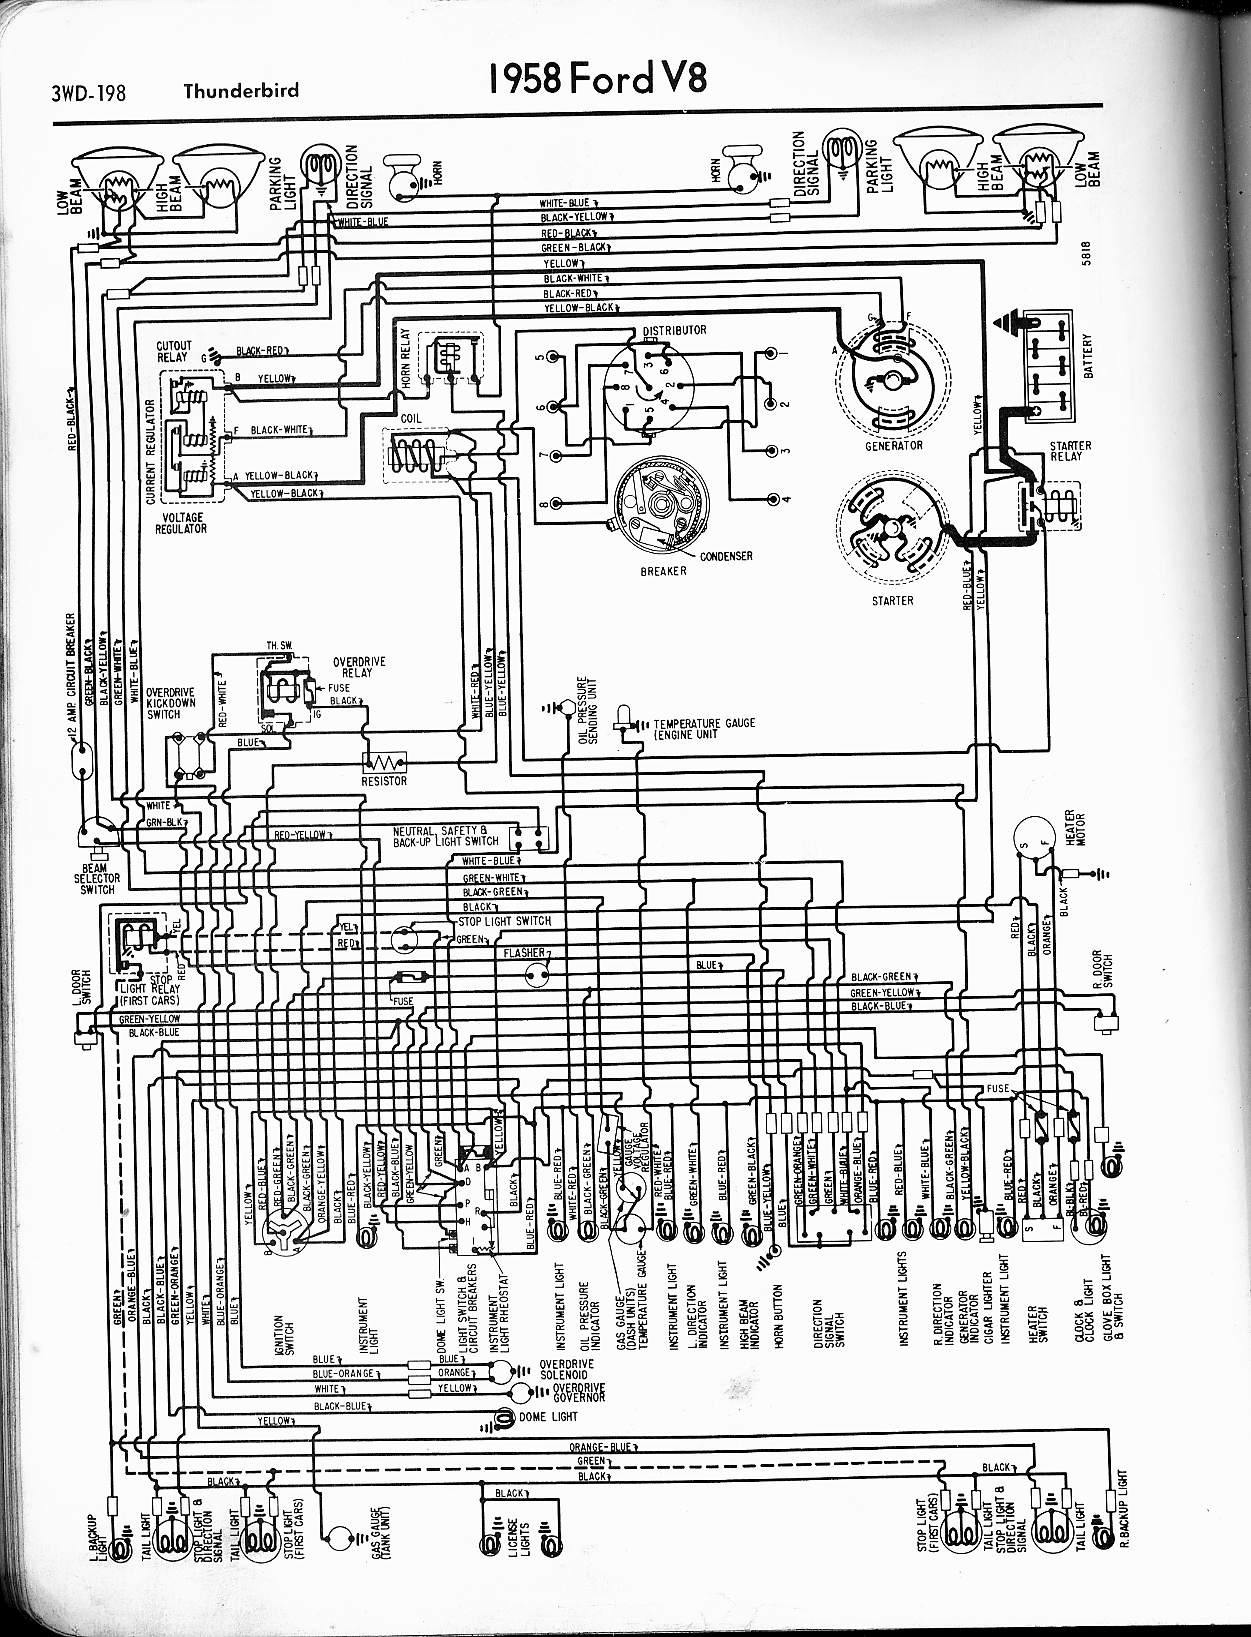 For A Chevy 350 Starter Motor Wiring Diagram Index Of Goulet Tbird